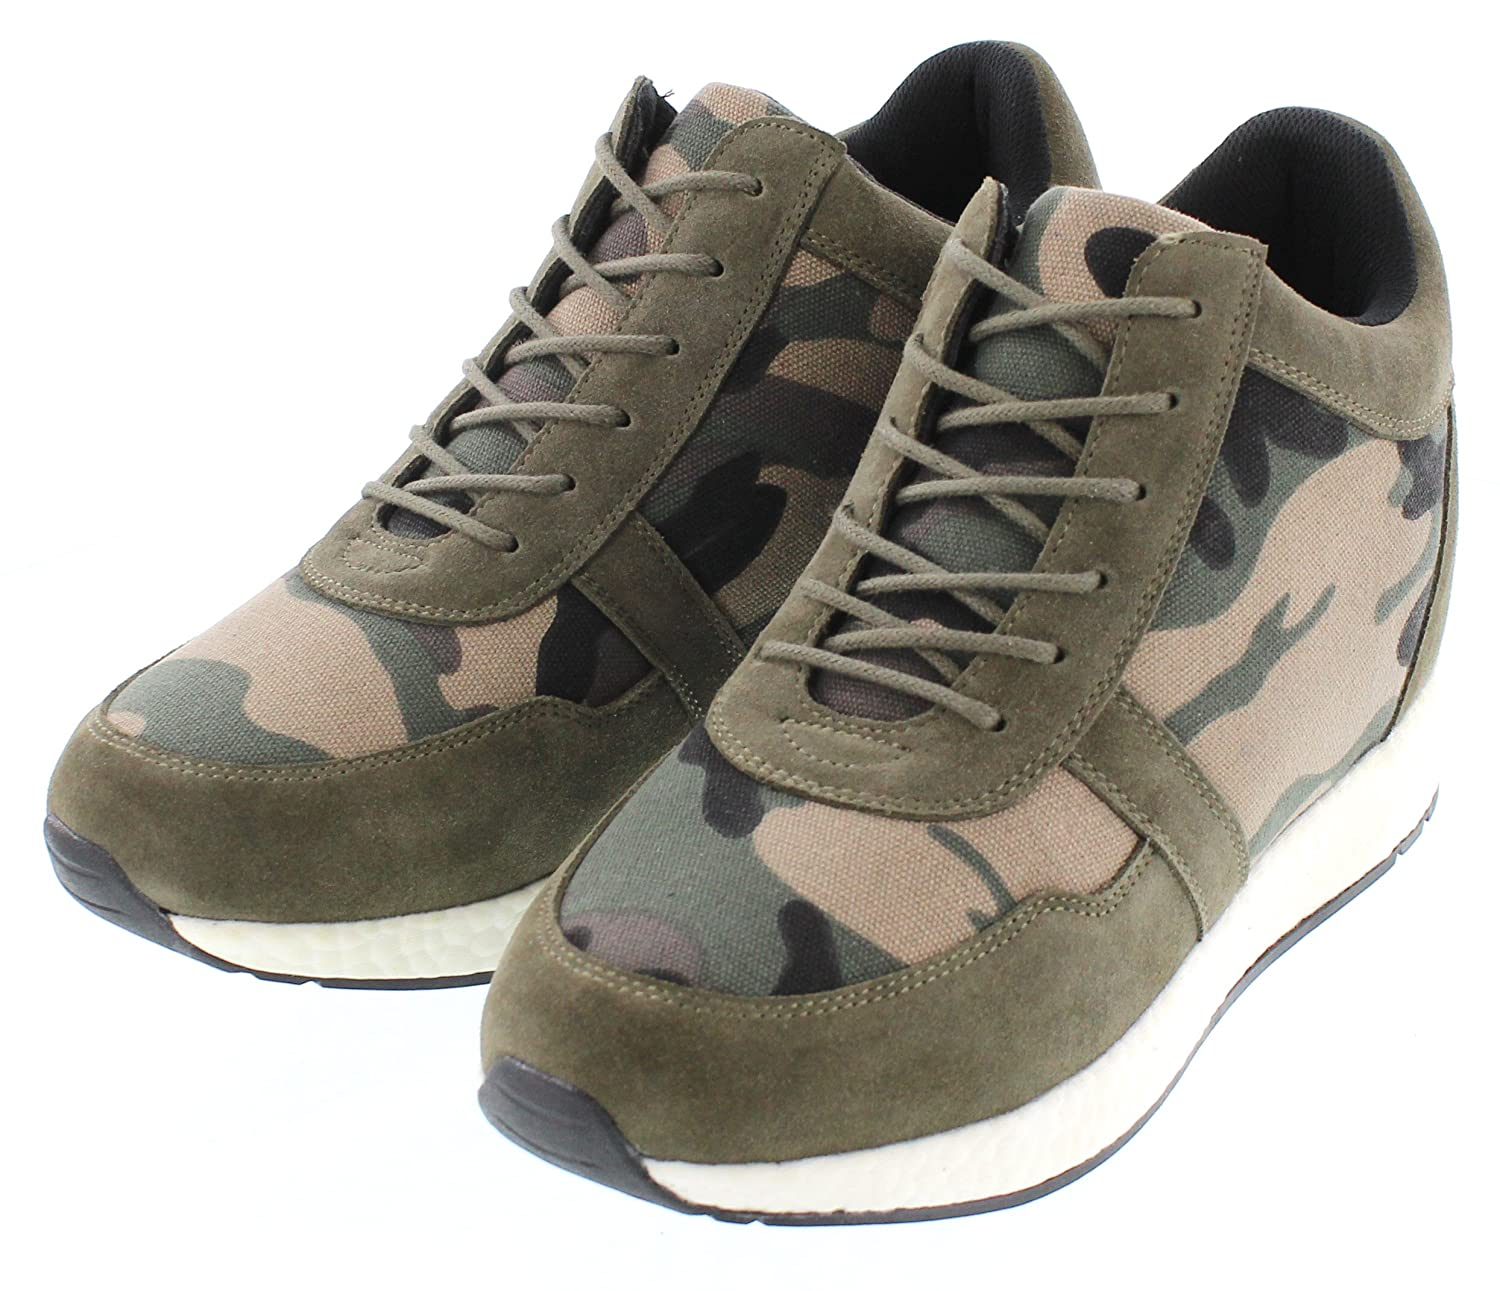 3.2 Inches Taller Camo Green Canvas Lightweight Lace-up Casual Trainers Sneakers CALTO Mens Invisible Height Increasing Elevator Shoes H7241